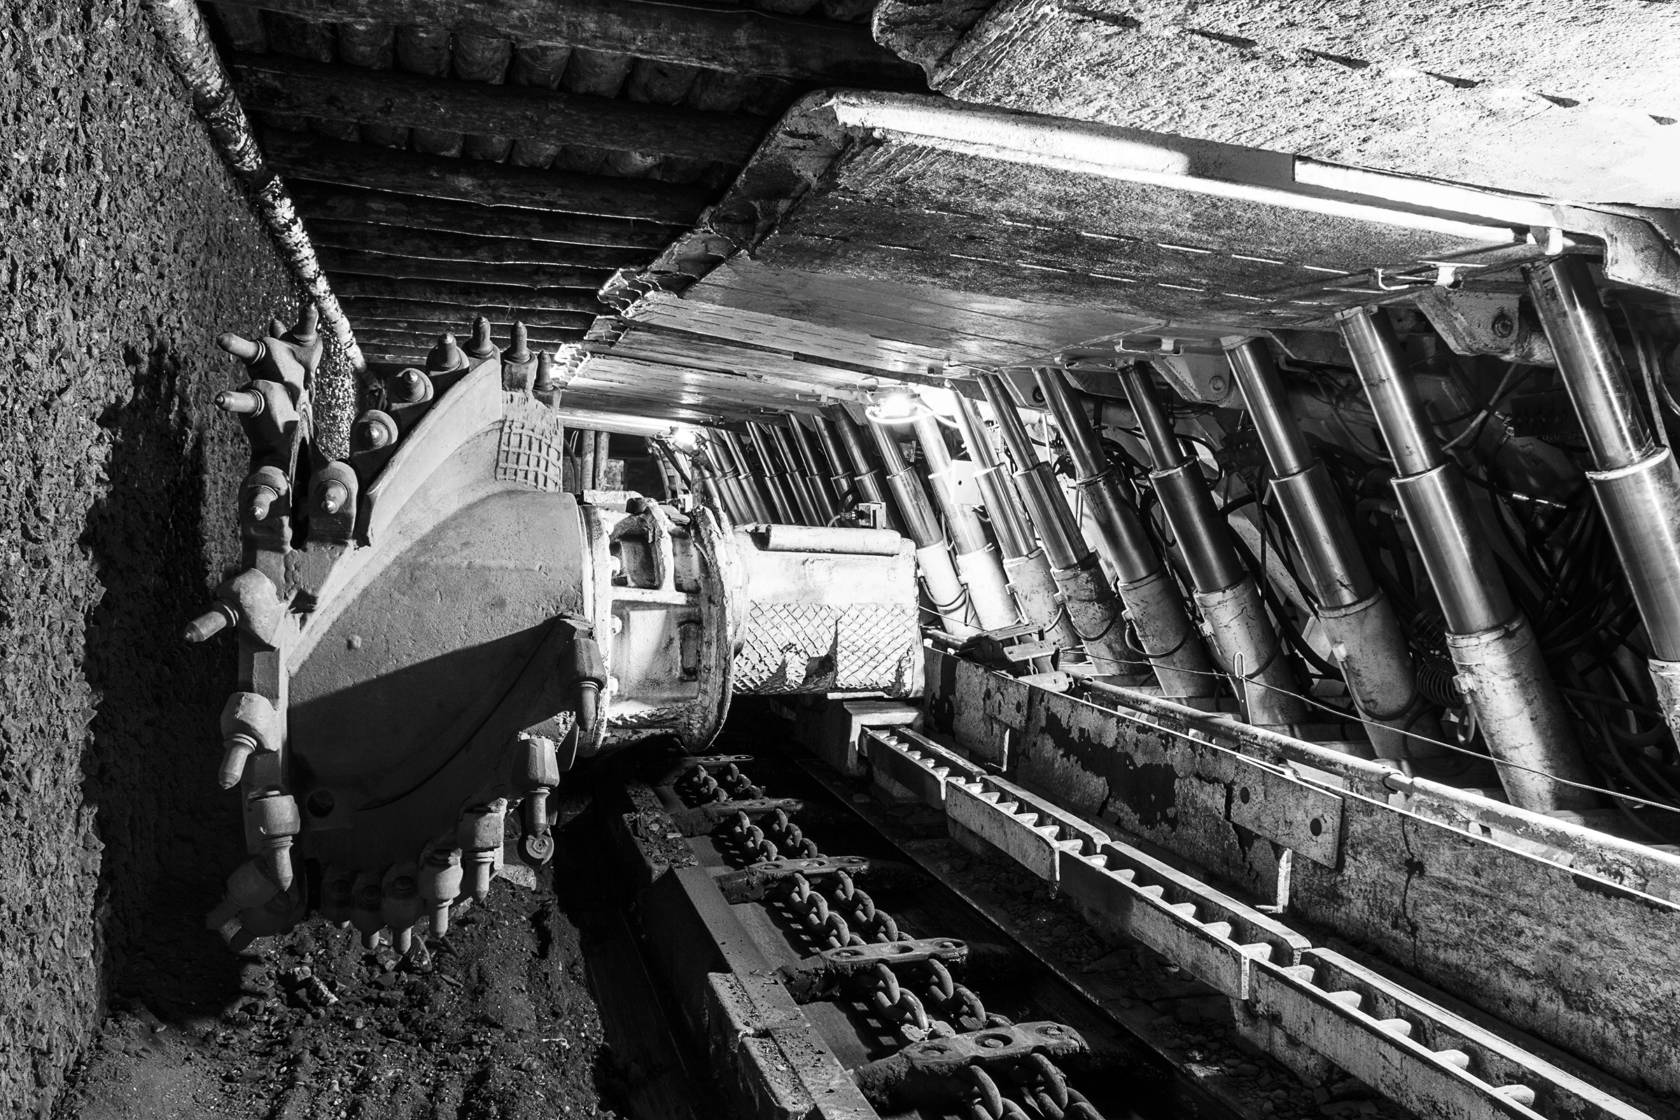 Longwall Mining: Shearer, with two rotating cutting drums and movable hydraulic powered roof supports called shields.